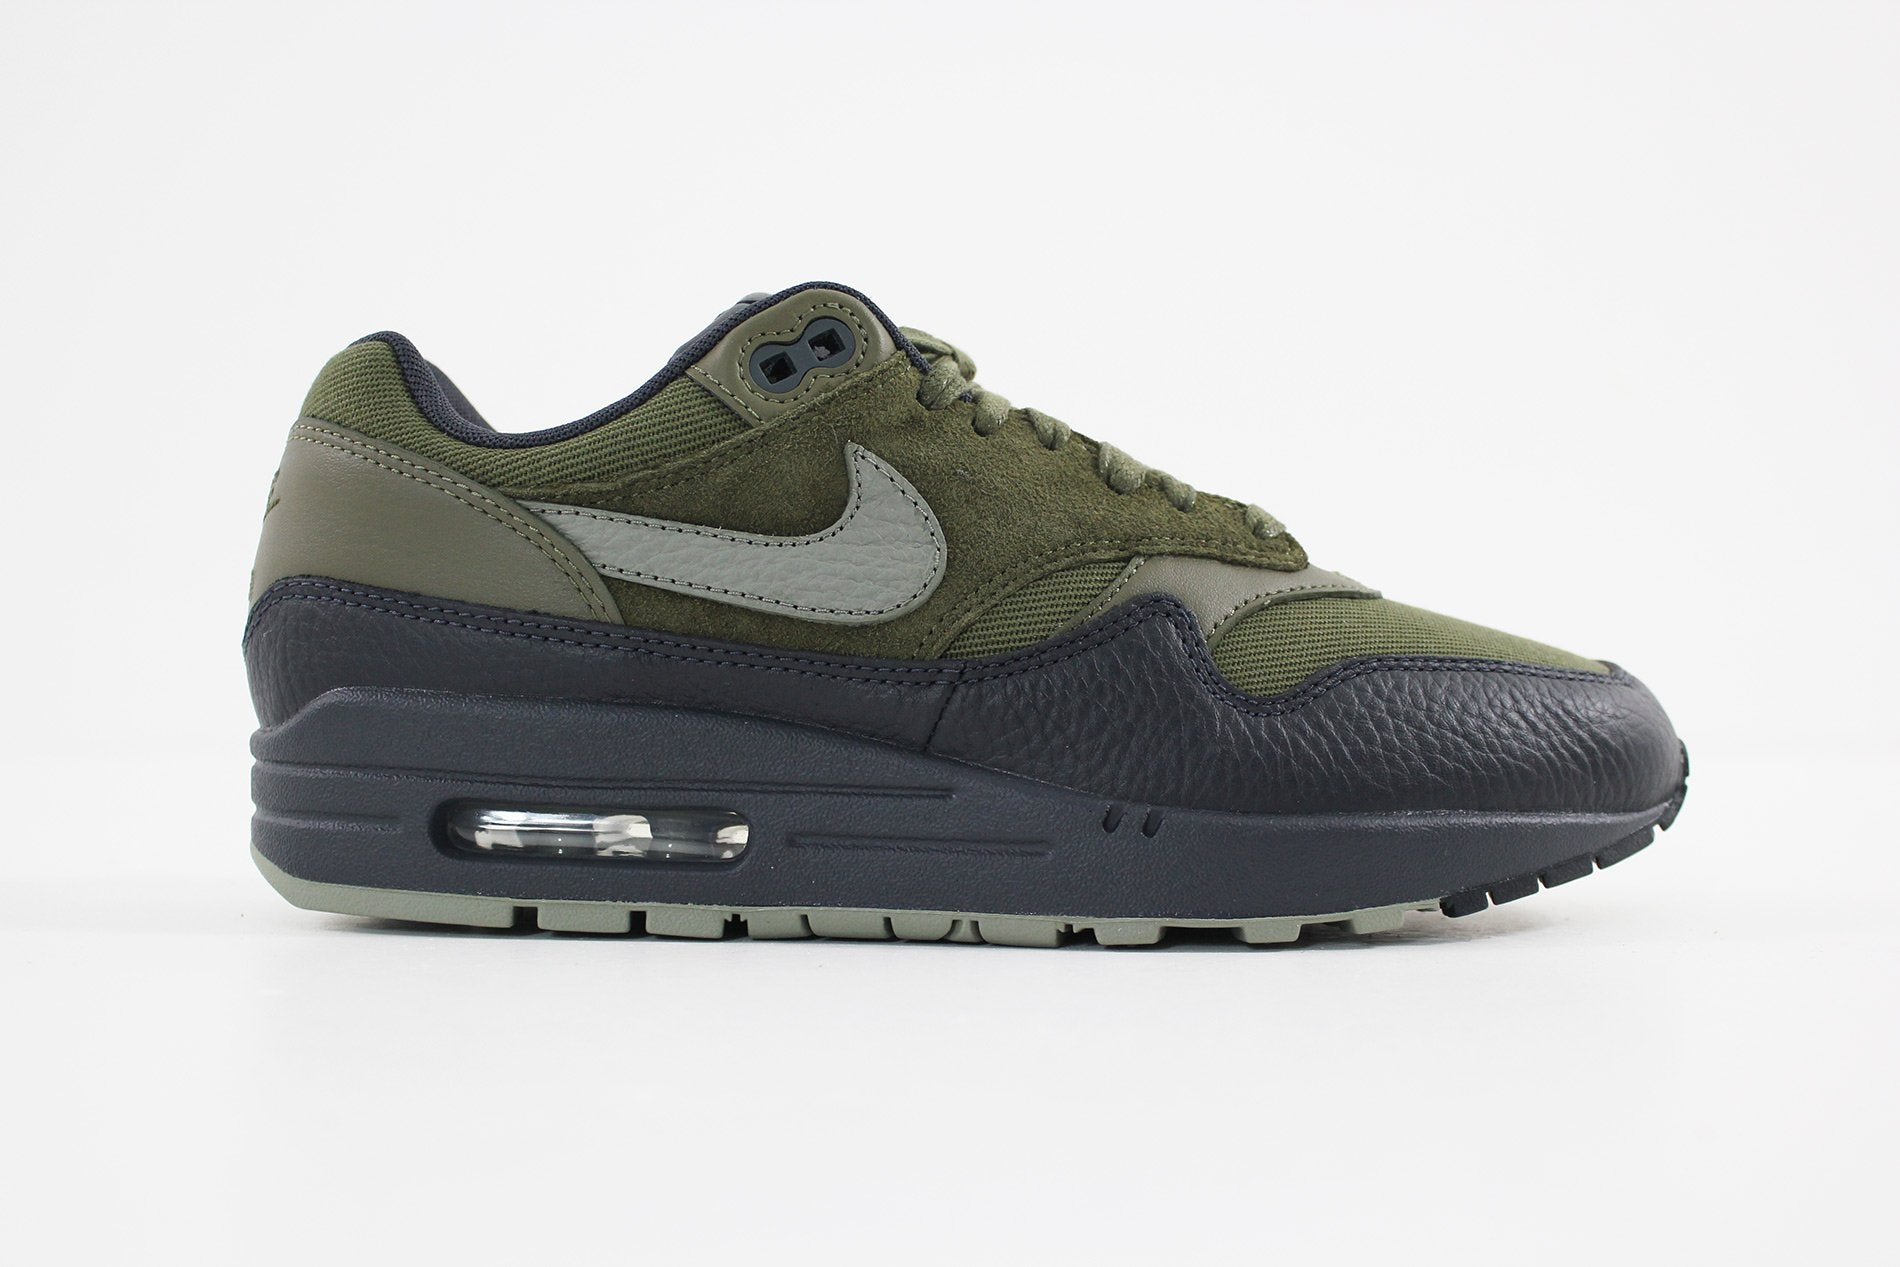 Nike Men's Air Max 1 Premium Shoe (MEDIUM OLIVEDARK